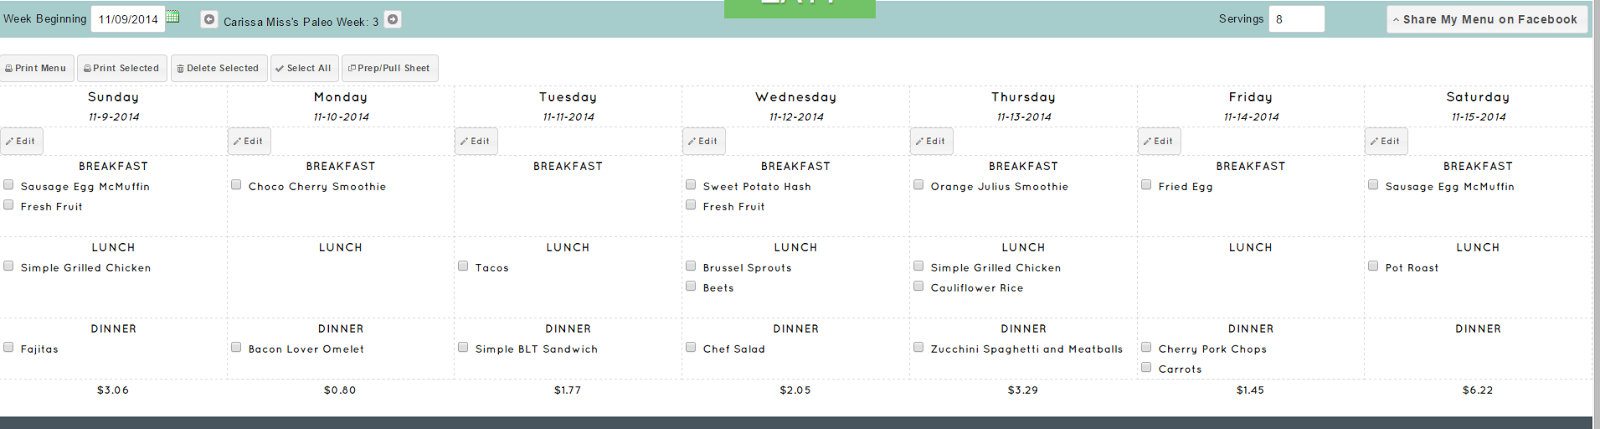 Carissa Miss: 30 Day Meal Plan with What to Eat